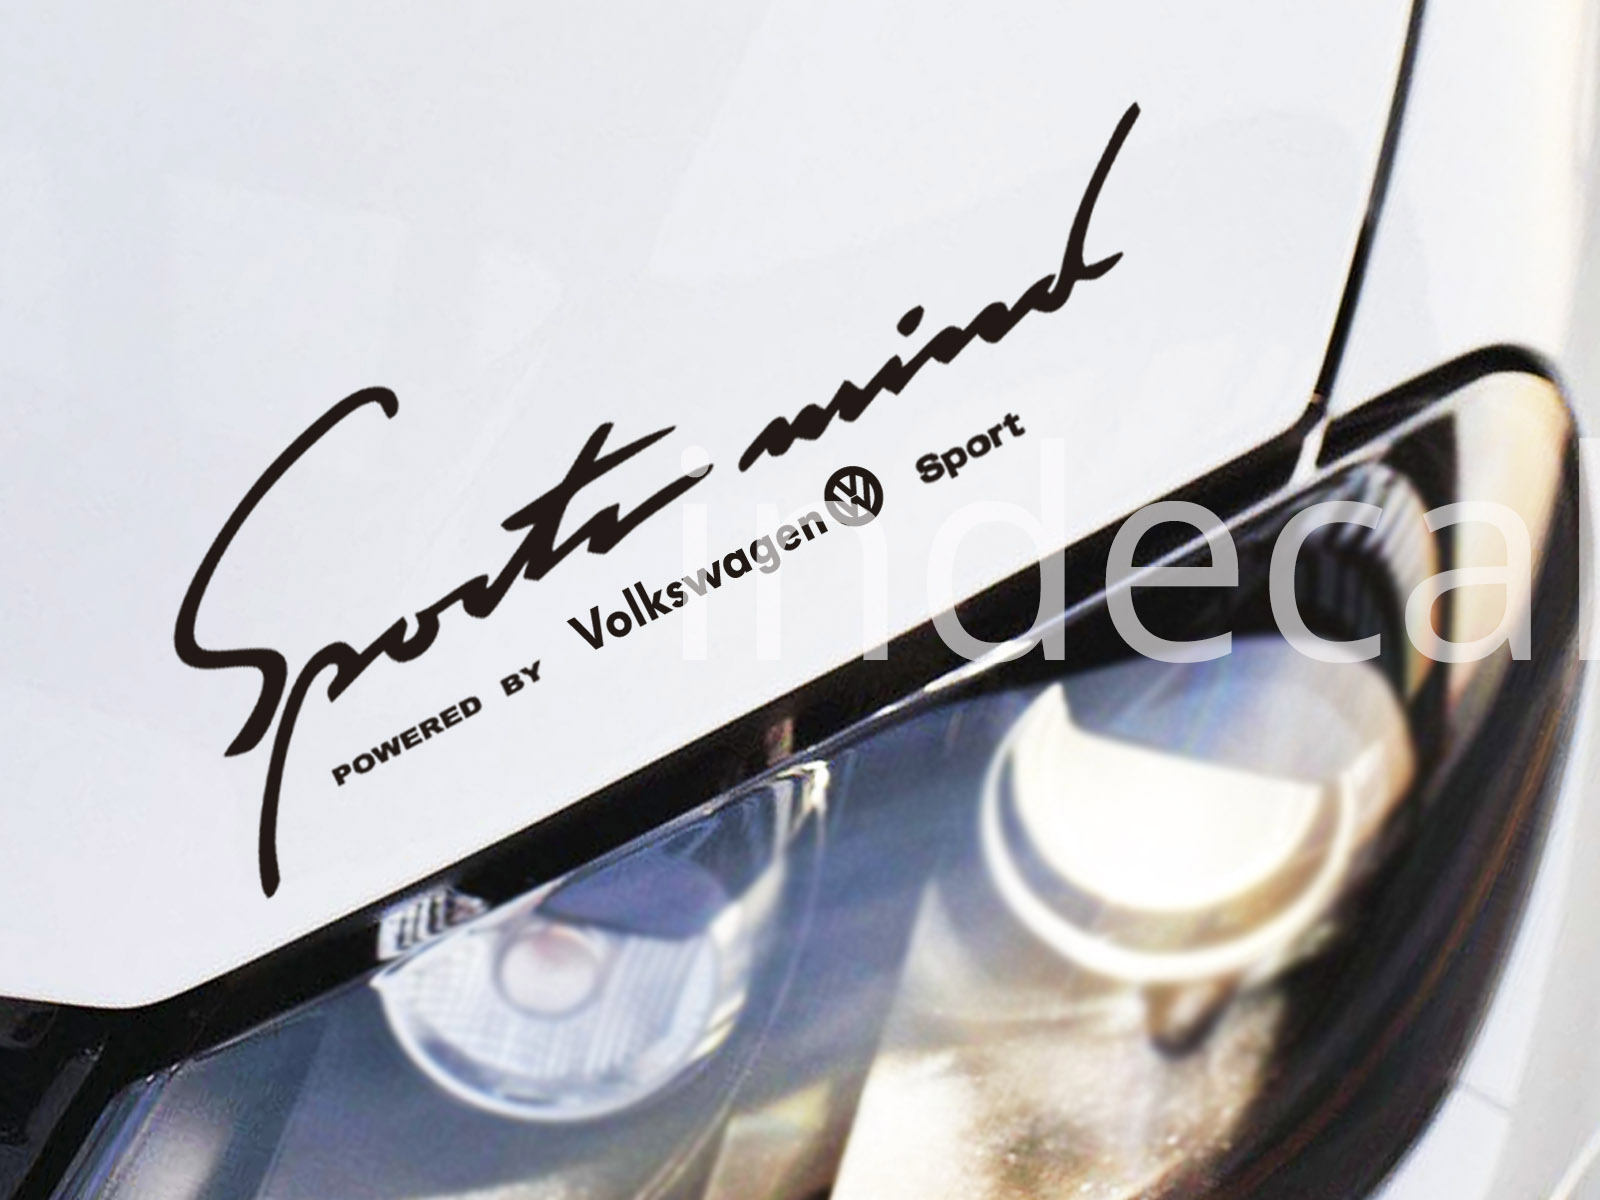 1 x Volkswagen Sports Mind Sticker - Black